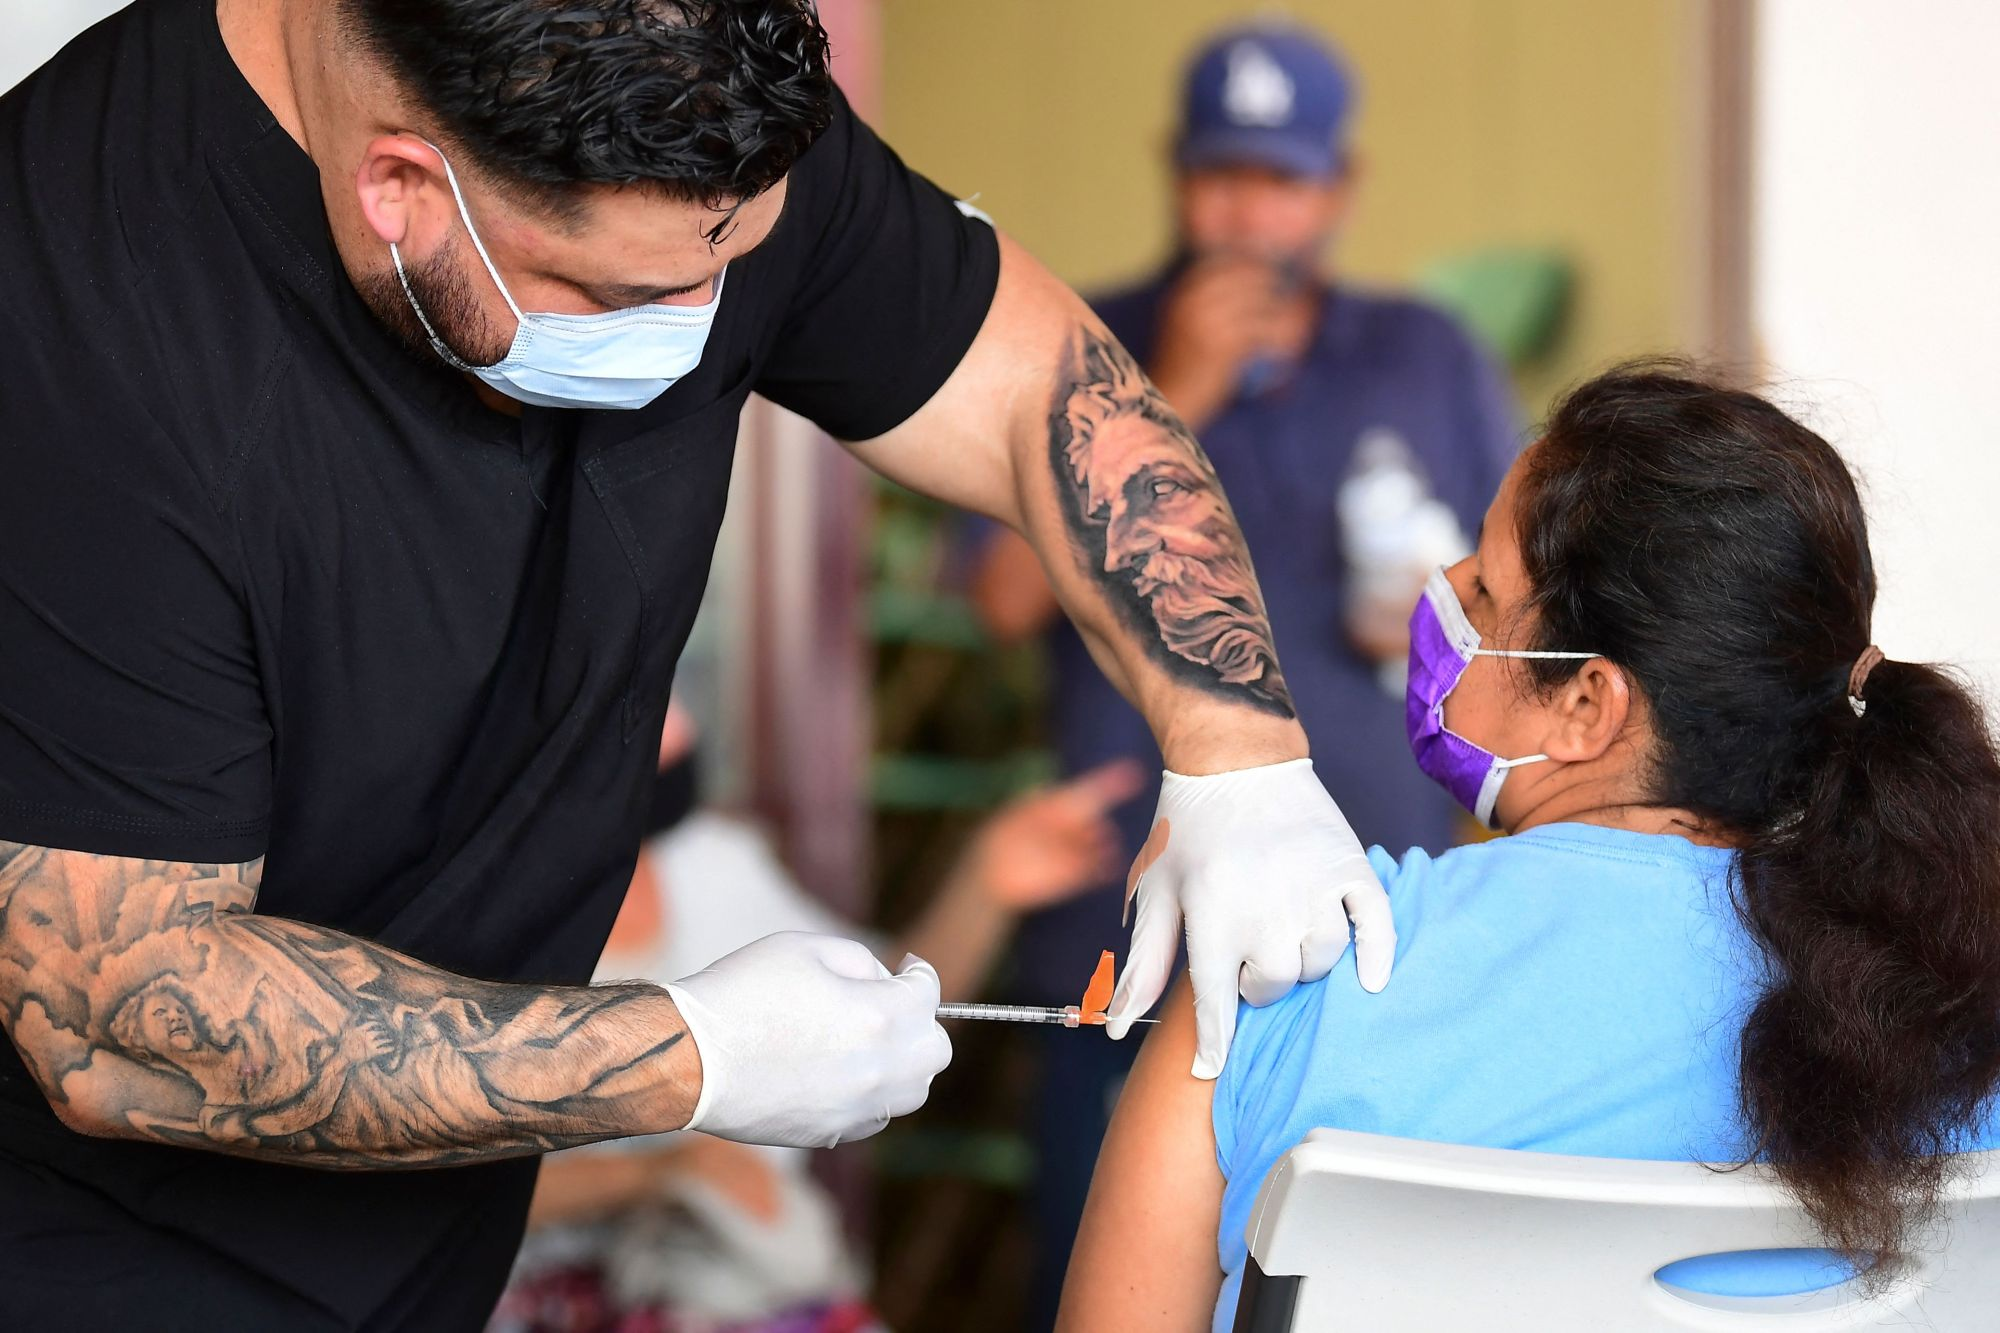 The Pfizer COVID-19 vaccine is administered at a mobile clinic to residents in an East Los Angeles neighborhood. (FREDERIC J. BROWN/AFP via Getty Images)